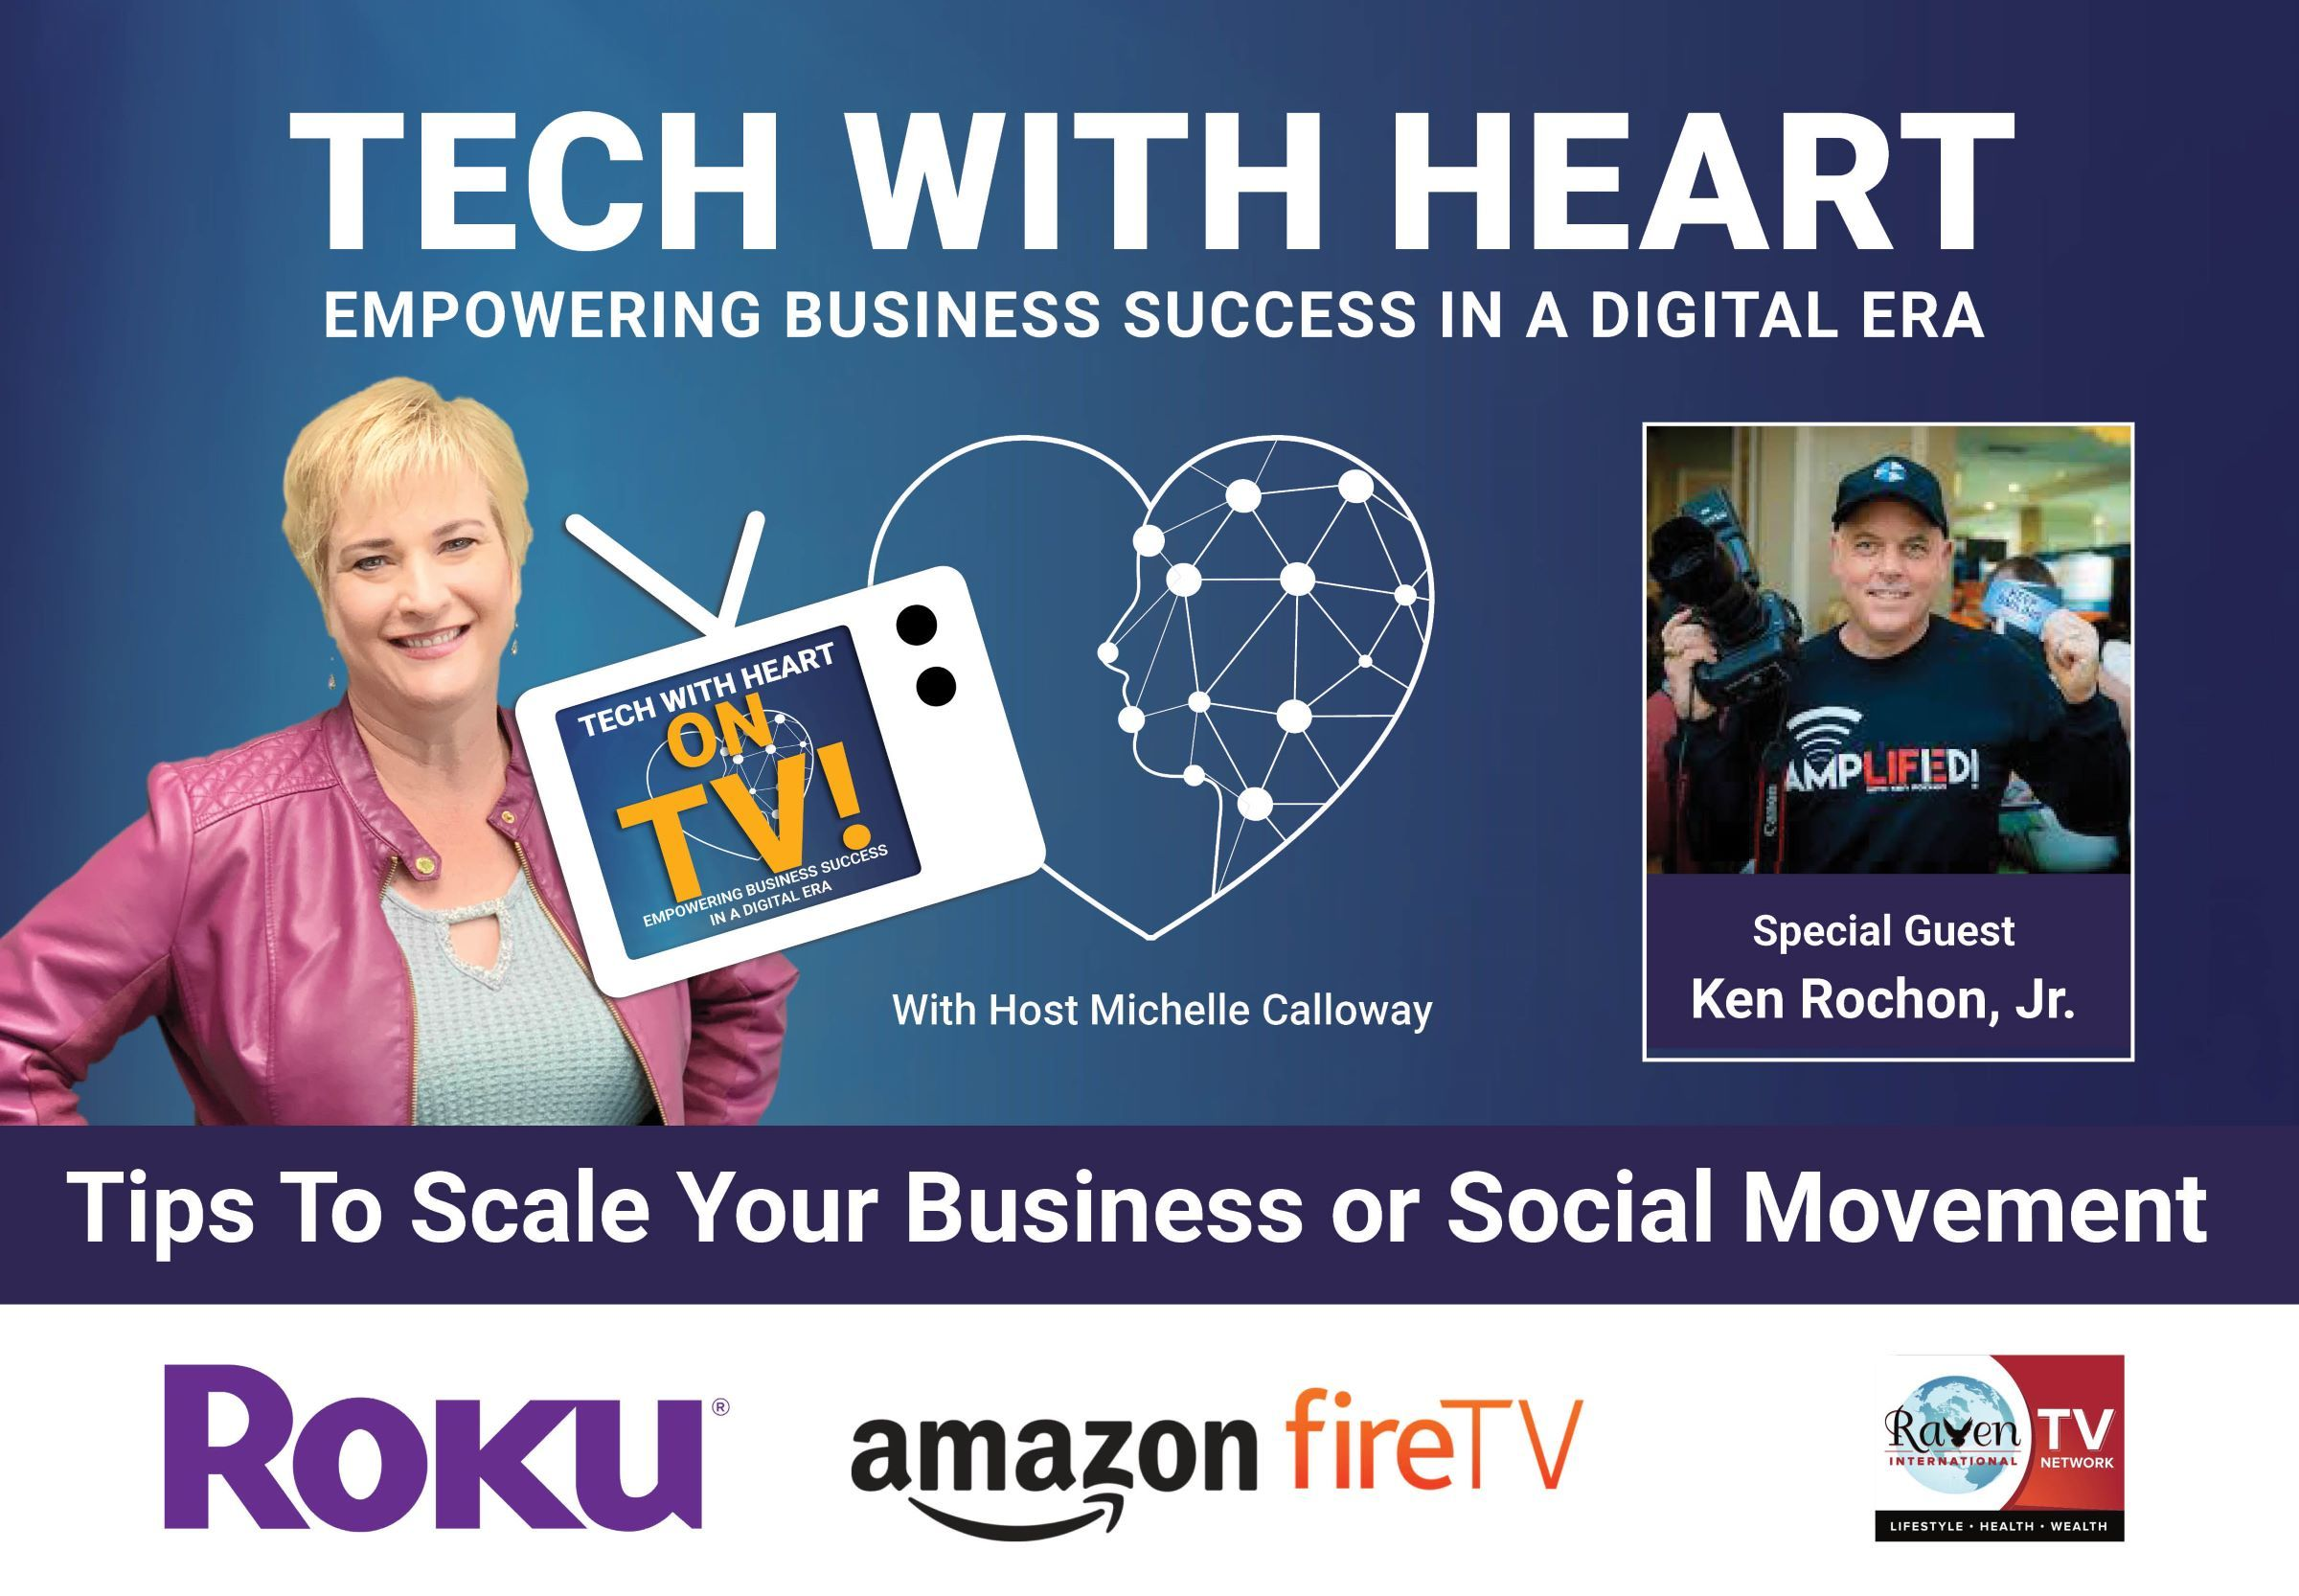 Tips To Scale Your Business or Social Movement – A Tech With Heart TV Interview With Ken Rochon, Jr.